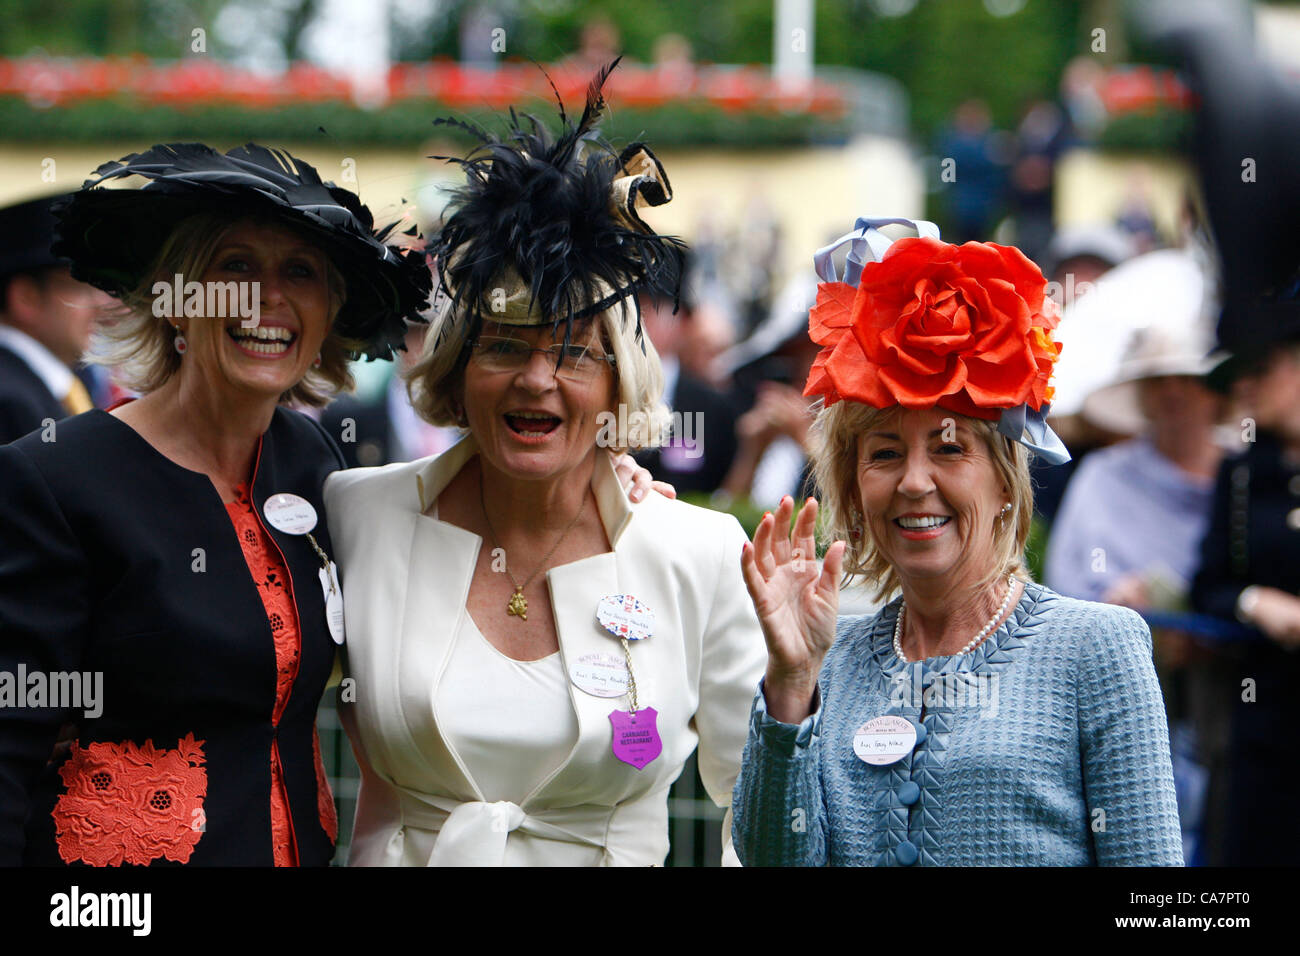 23.06.12 Ascot, Windsor, ENGLAND:  Three Owners of Black Caviar as their horse wins The Diamond Jubilee Stakes during - Stock Image